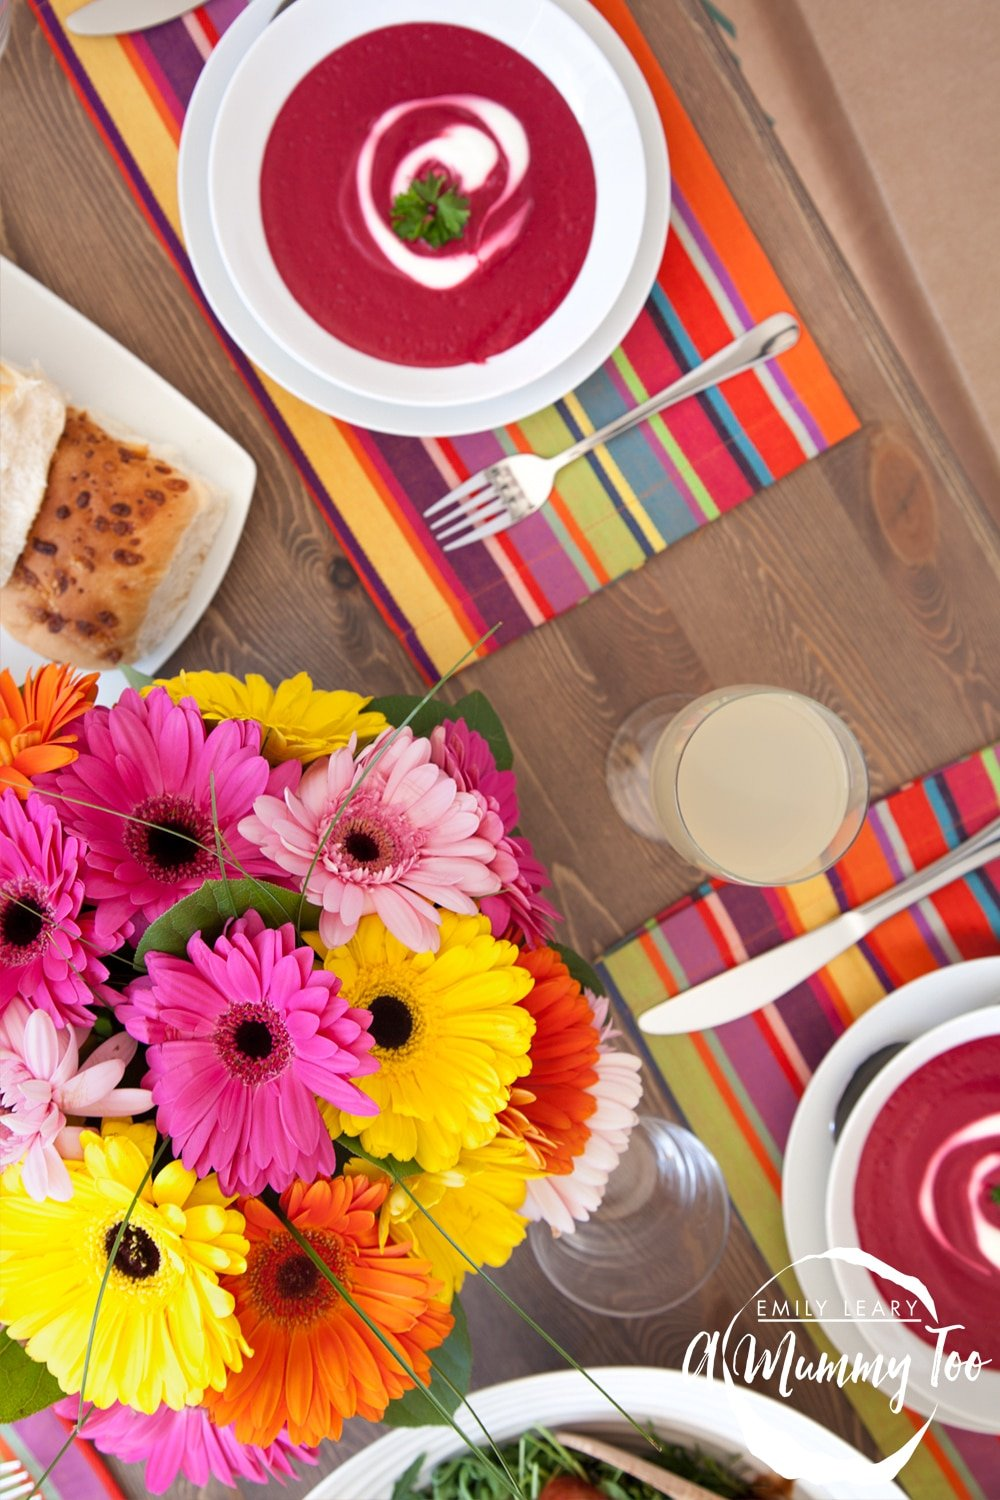 A gerbera centrepiece - a fun, colourful addition to your dinner party table